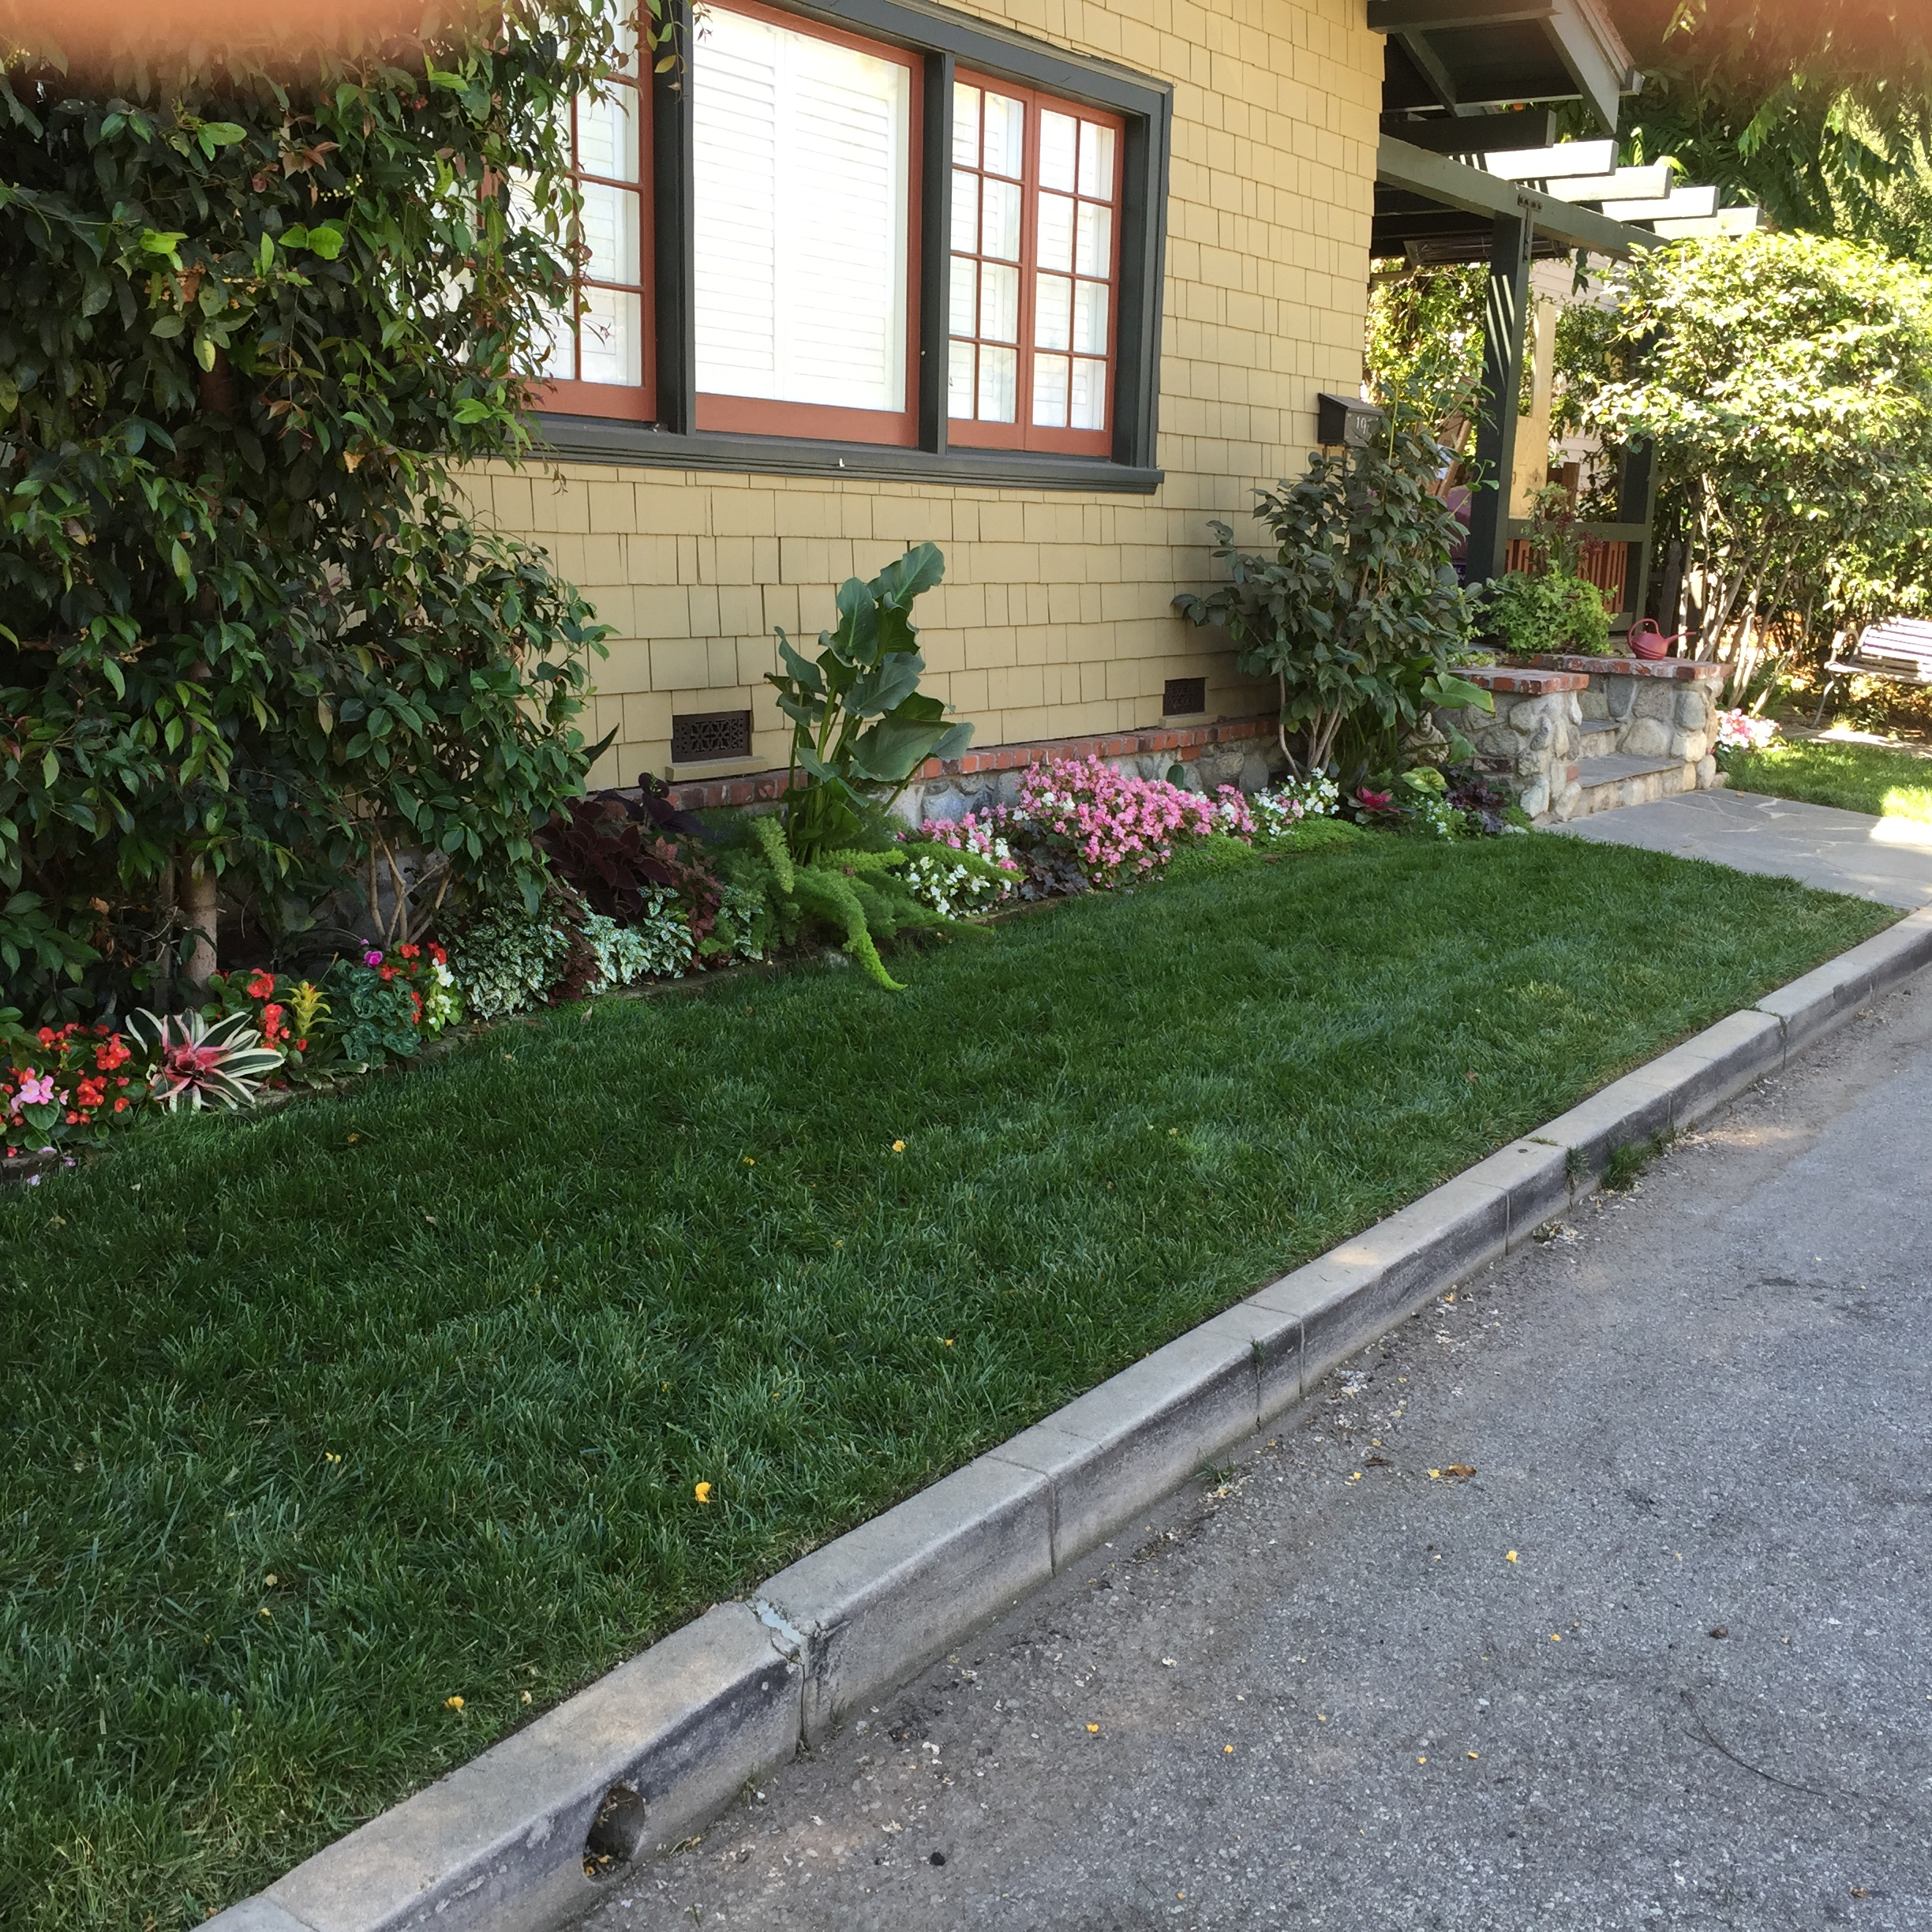 Flower plantings with lawn